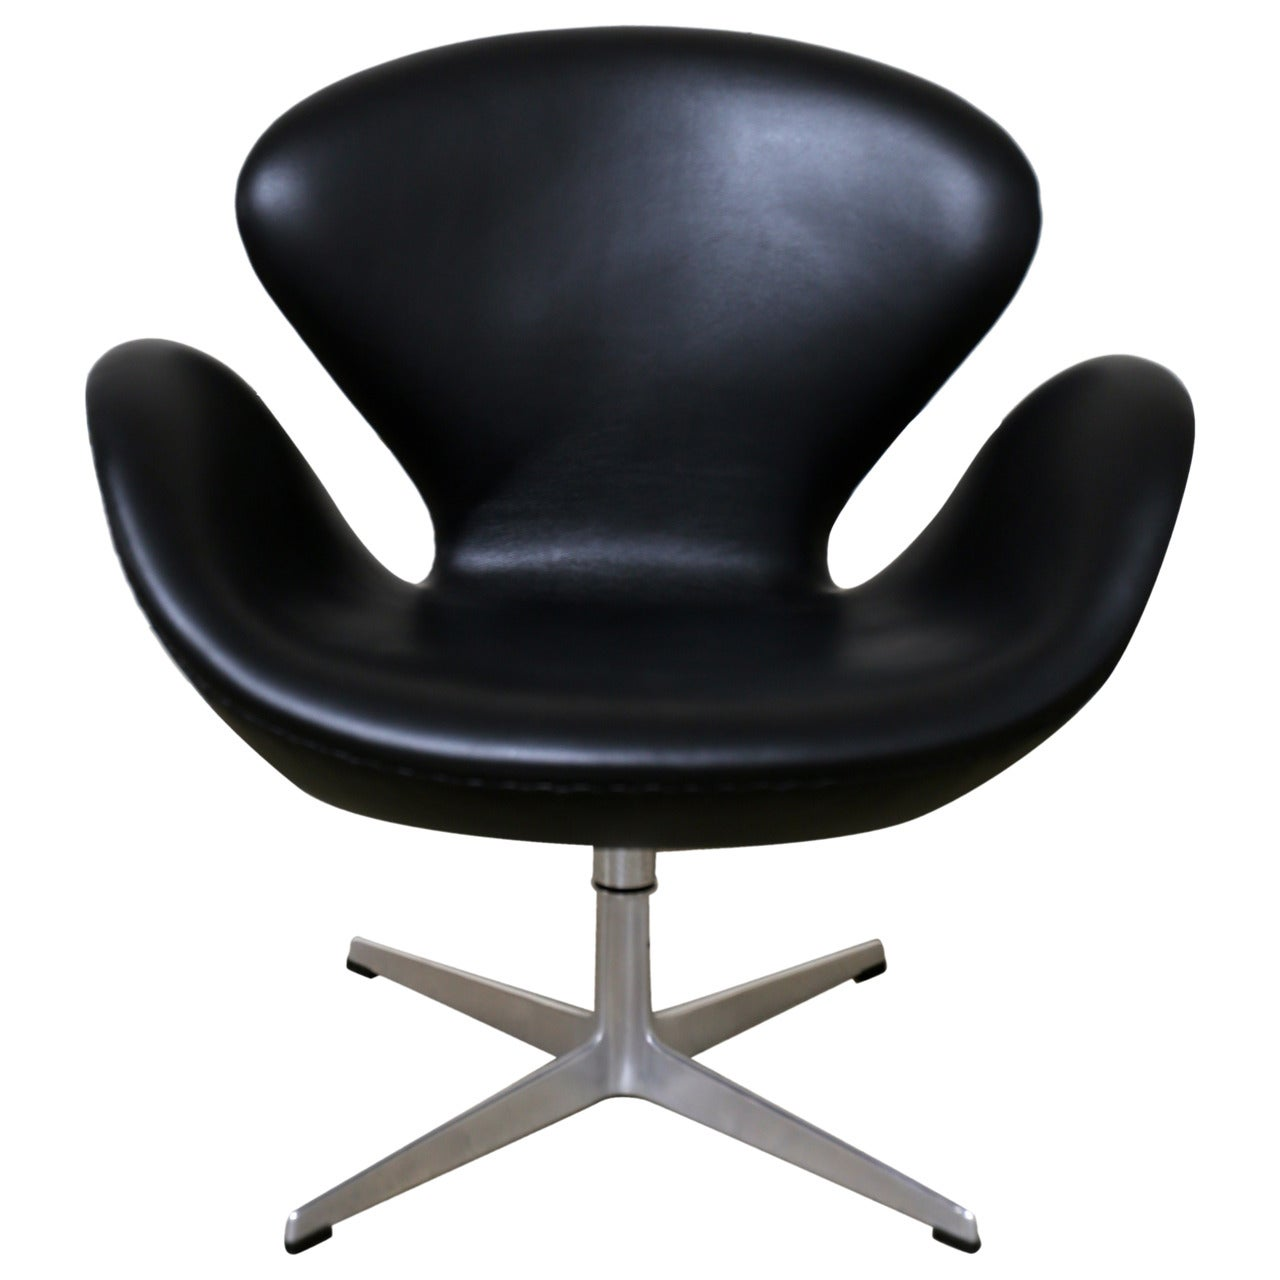 Leather Swivel Tilt Swan Chair by Arne Jacobsen for Fritz Hansen